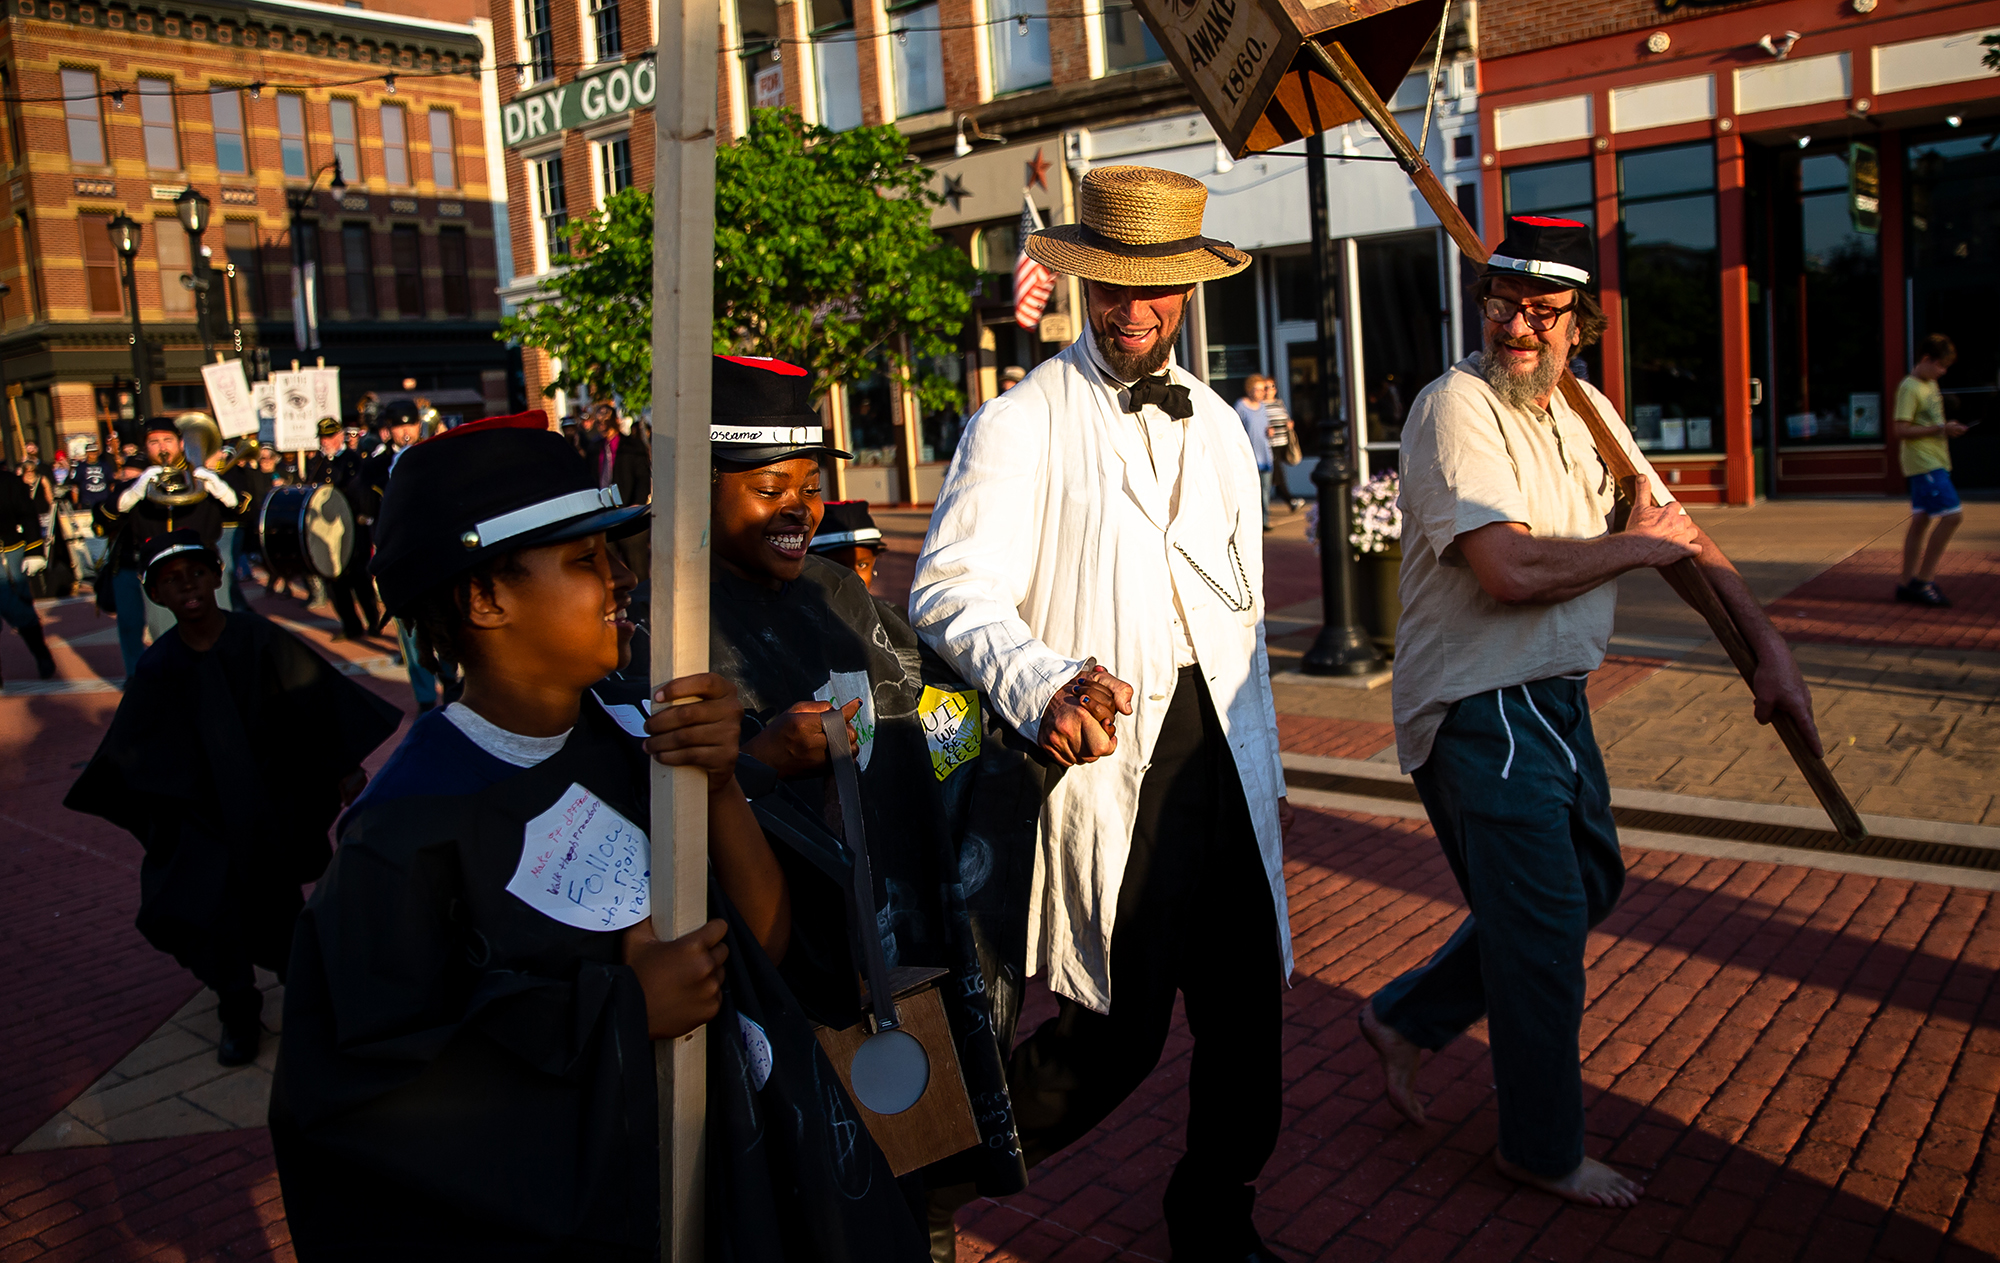 Fritz Klein portraying Abraham Lincoln is joined by youth of the Springfield Urban League, who helped make the caps and caps worn by the Wide Awakes, during the Lincoln Wide Awake Parade, a re-enactment of an 1860 parade to support Abraham LincolnÕs presidential candidacy, a march to the Old State Capitol to the the Lincoln Home, Saturday, Aug. 4, 2018, in Springfield, Ill. The Wide Awakes, who wore black caps and black hats when they marched, got their name from a small group of young self-named supporters who impressed Lincoln at a political rally, according to the Journal of American History. [Justin L. Fowler/The State Journal-Register]